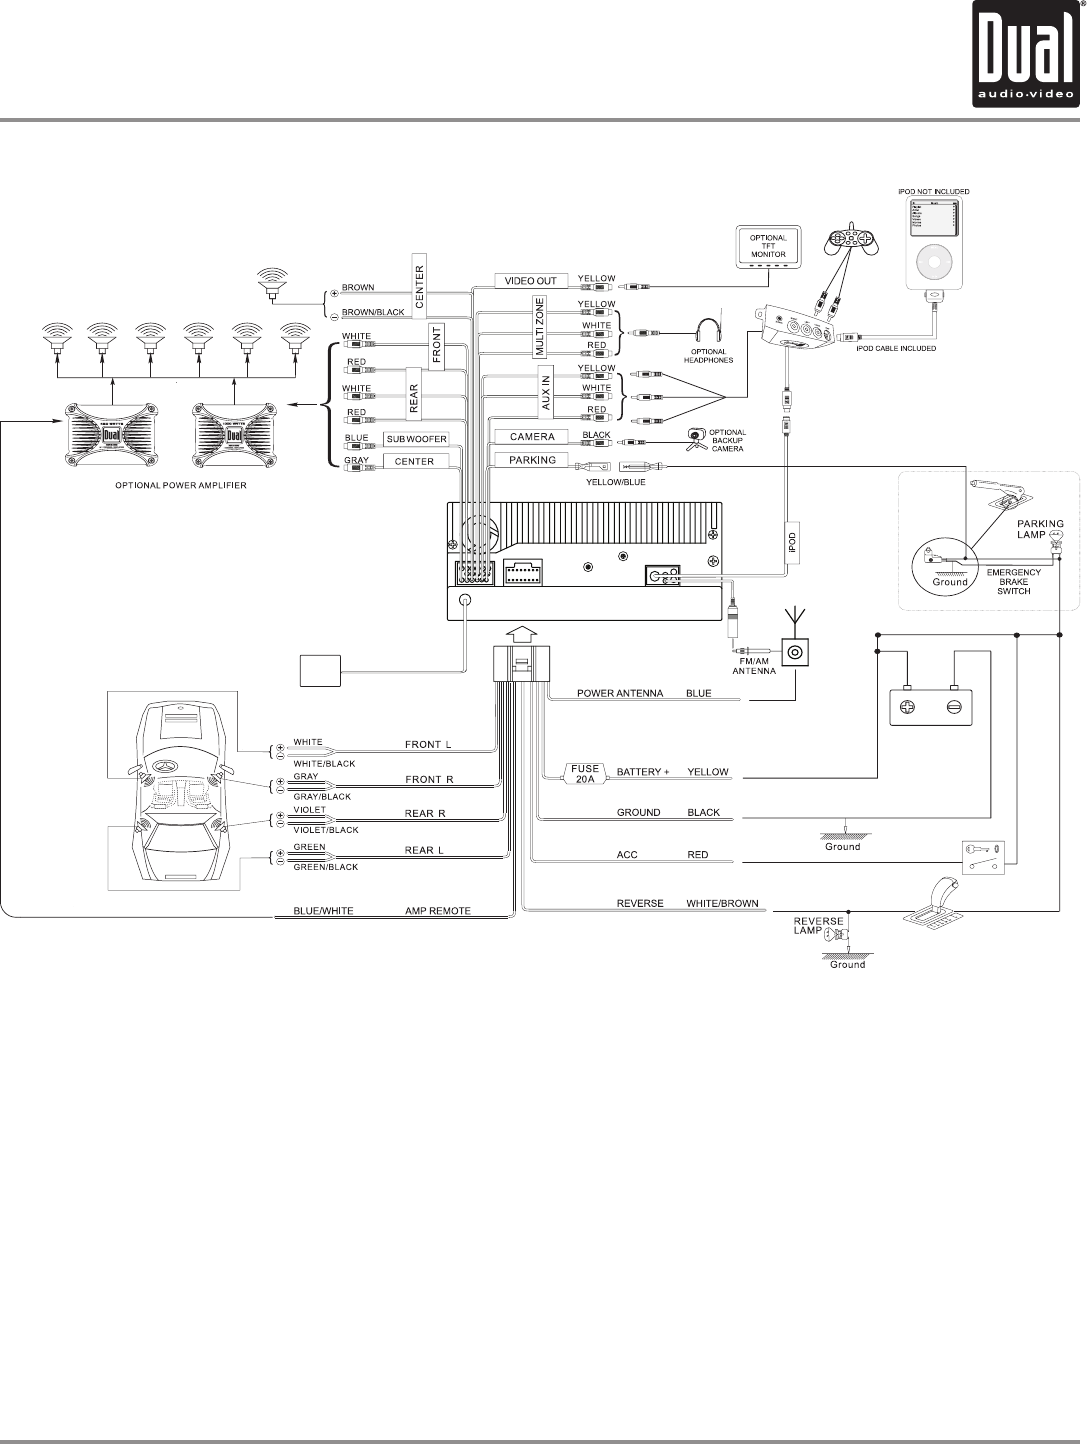 3b1eabe8 6d4d dff4 ed13 5d321c52274c bg7 page 7 of dual car video system xdvdn8290 user guide dual xdvd236bt wiring diagram at gsmx.co